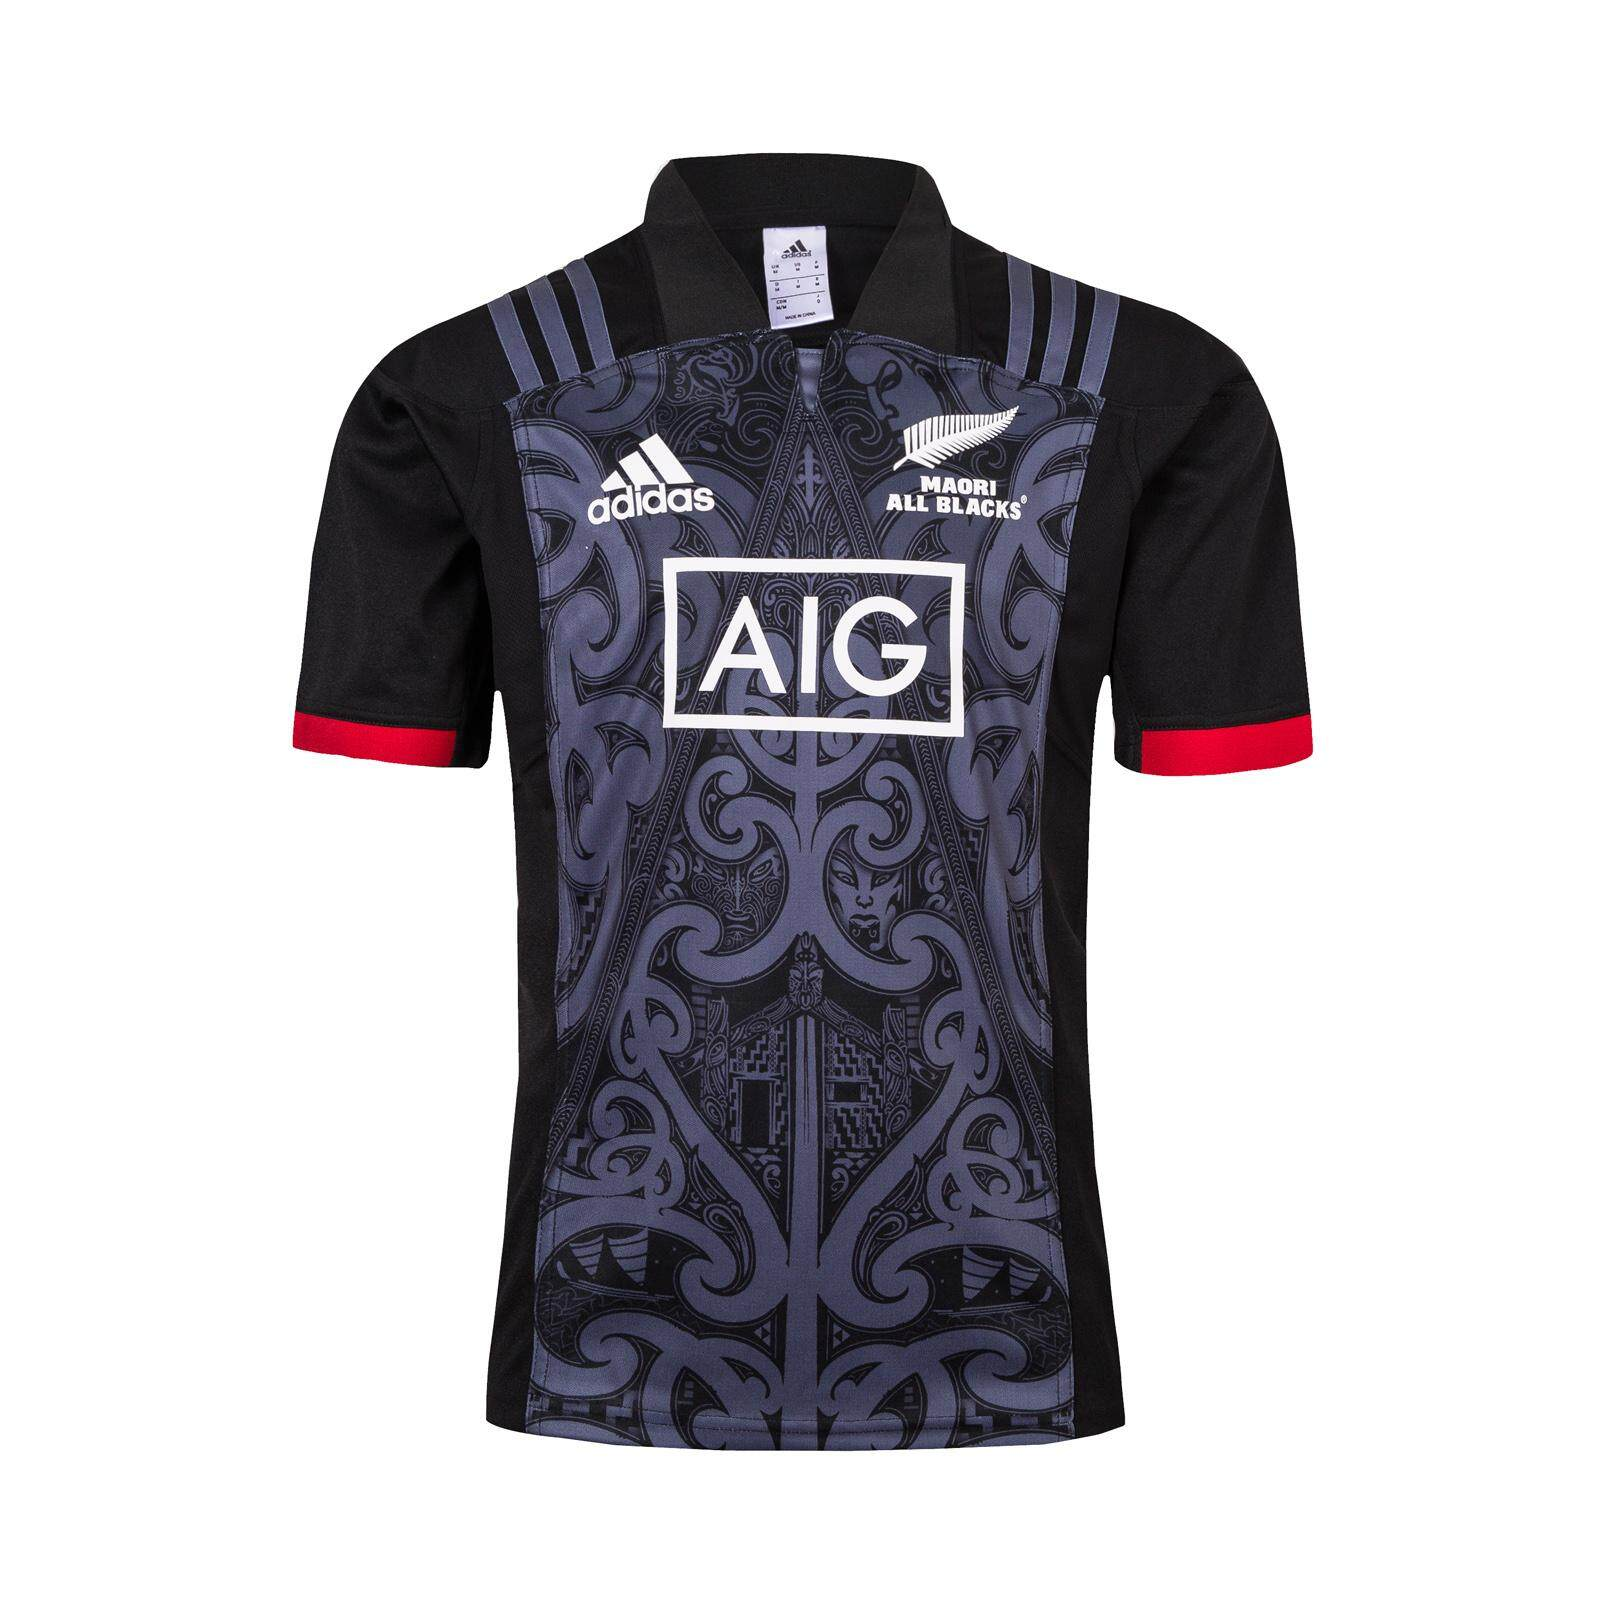 864b90f0df2 New Zealand All Blacks Maori 2018 2019 Rugby Home Jersey Short Sleeve Black  for Men